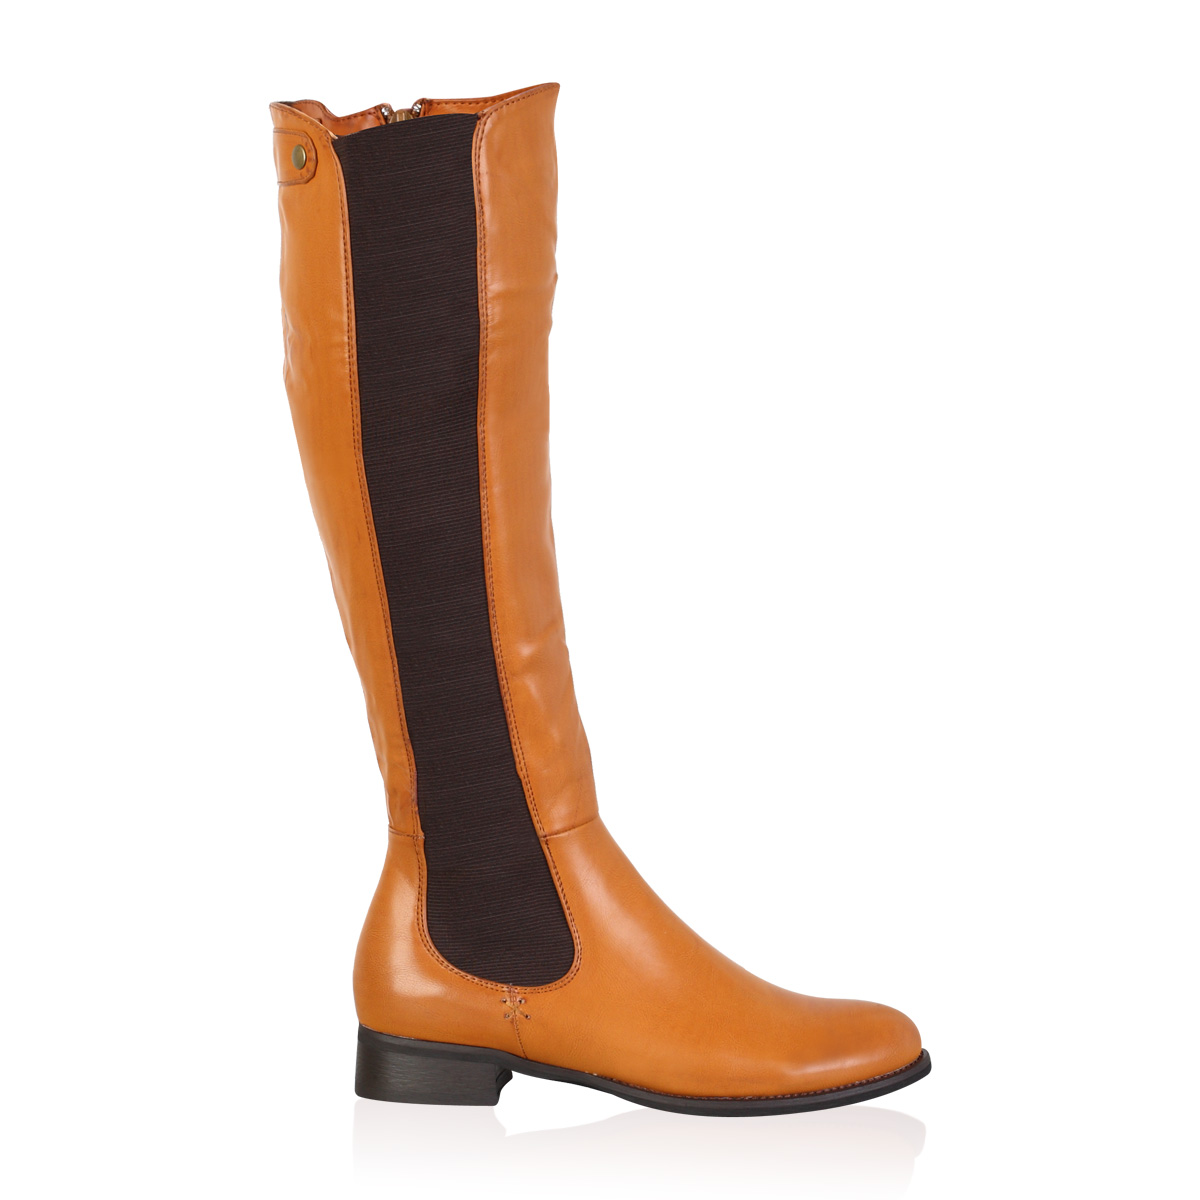 new zip up winter womens low heel knee high